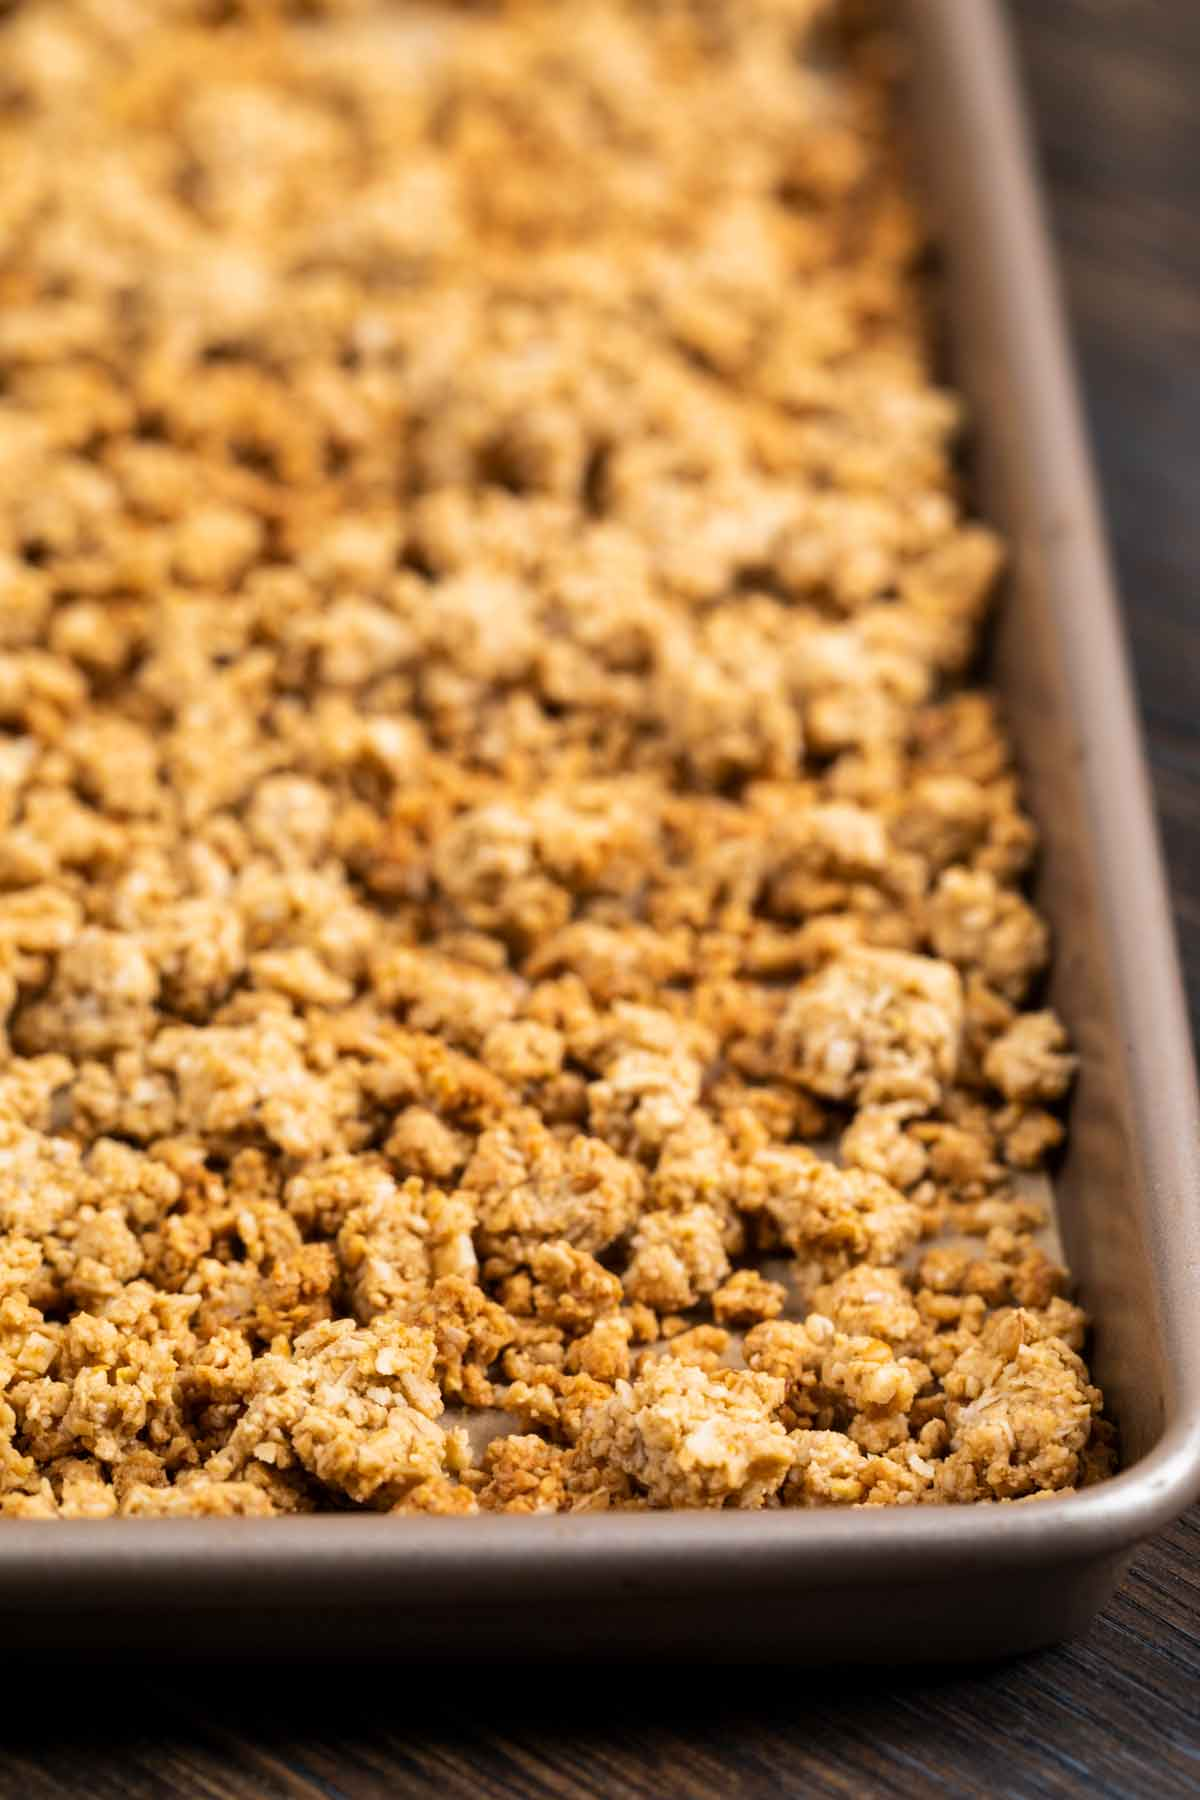 A baking sheet after coming out of the oven, with golden baked homemade granola.